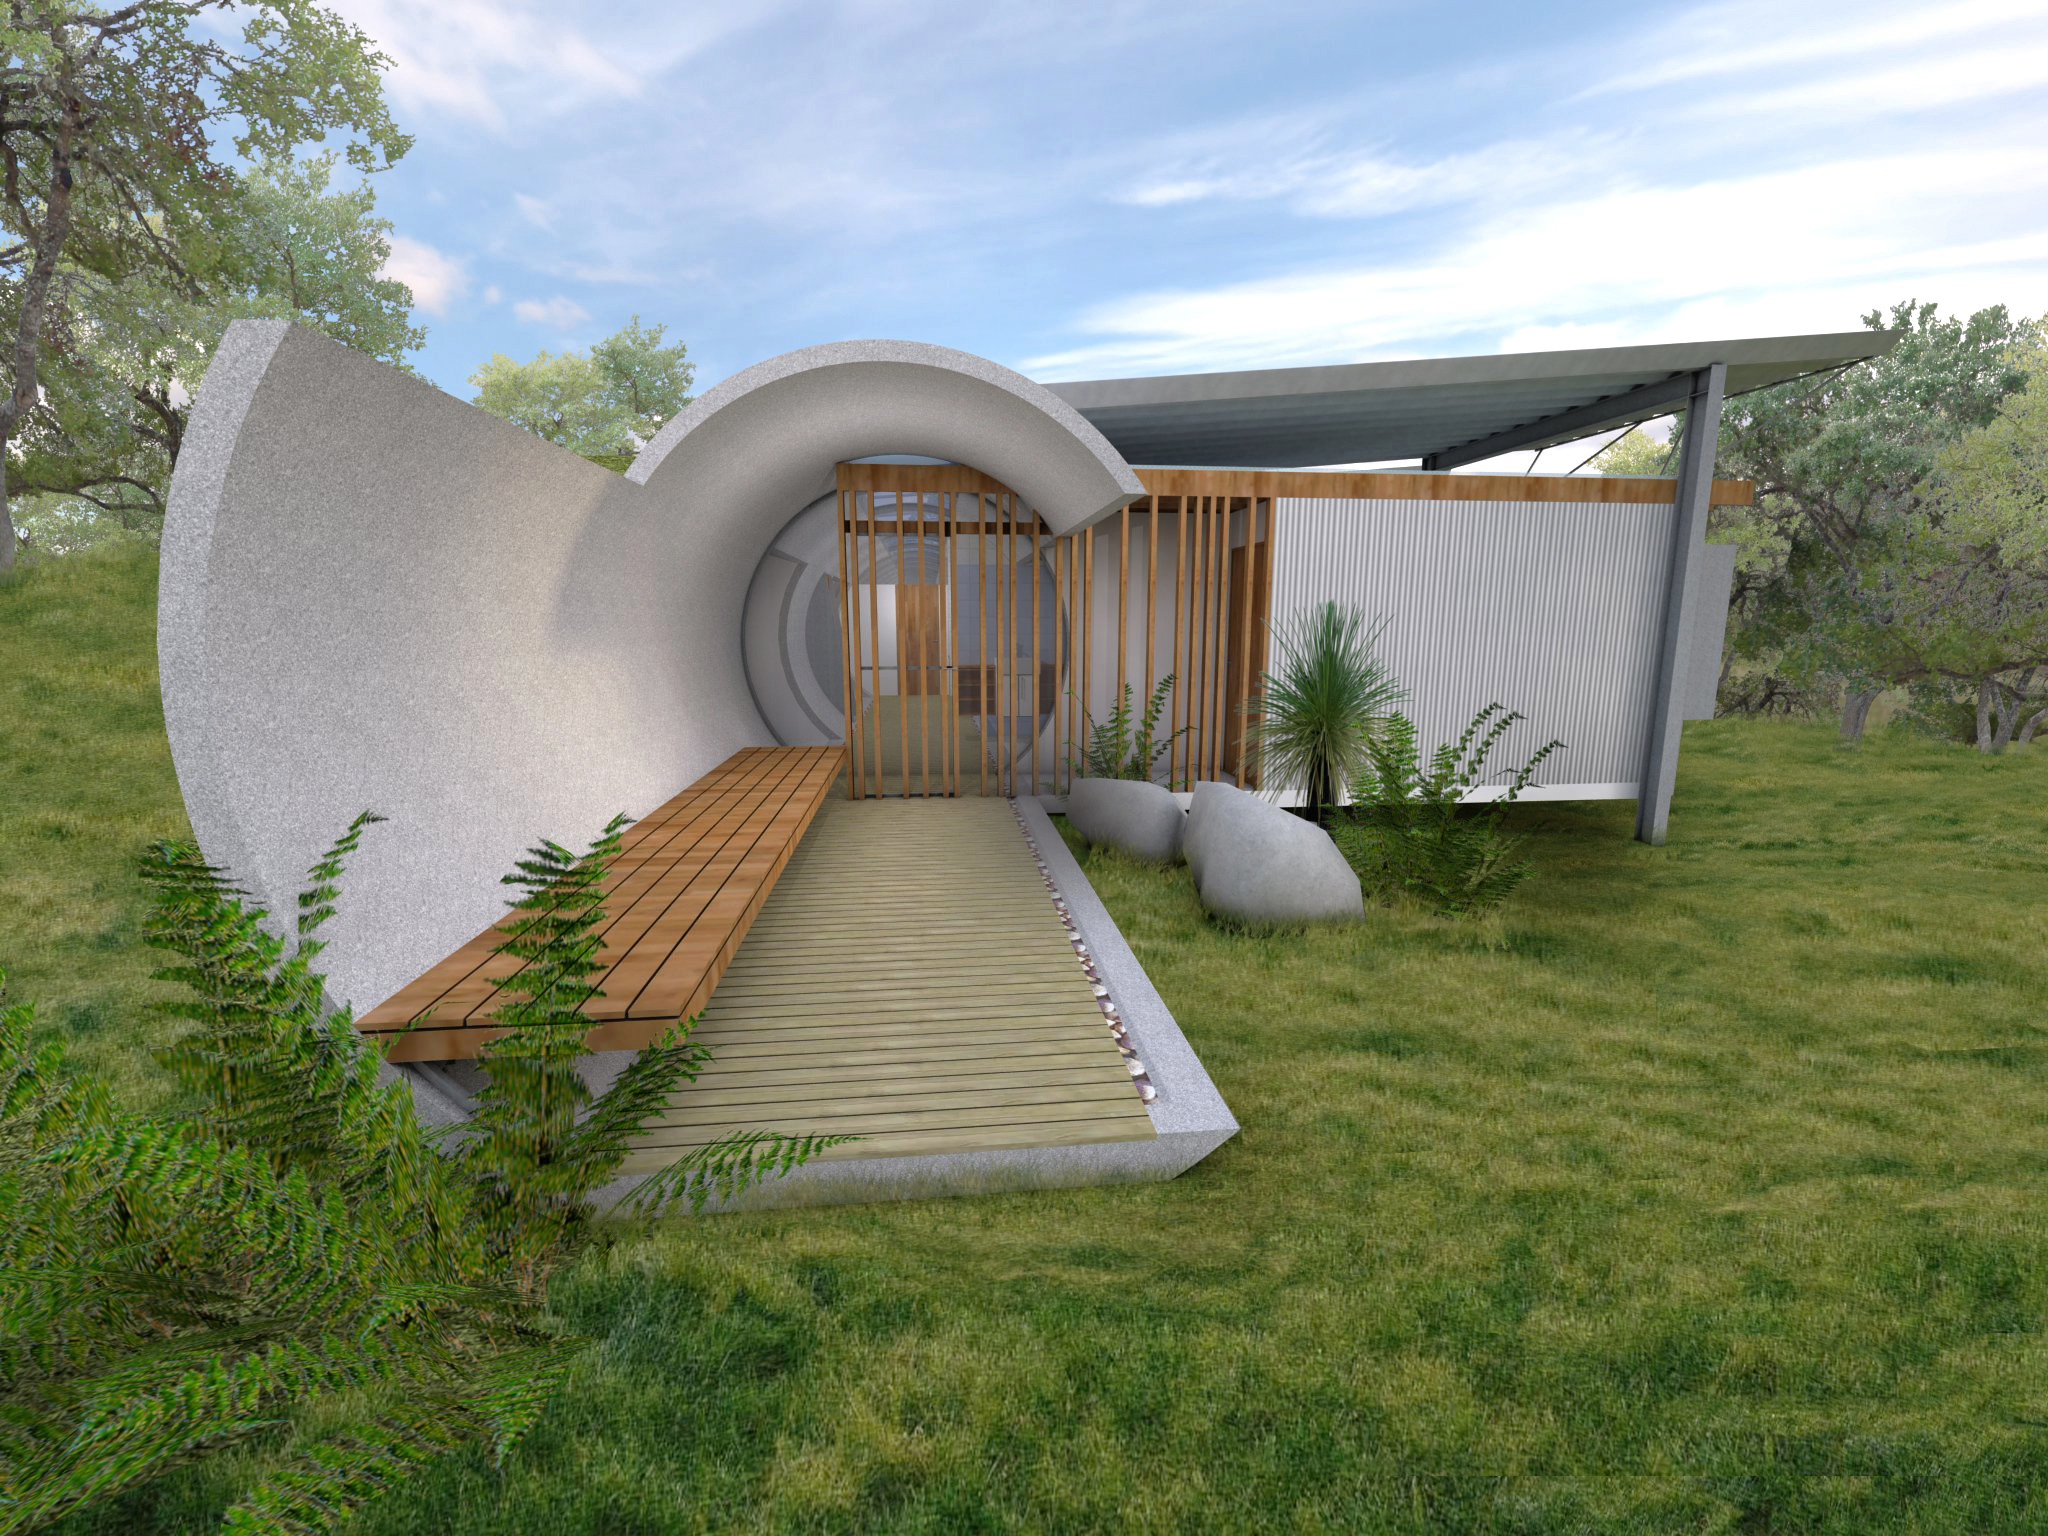 home designs land speed record cars green home designs green homes designs epic home designs